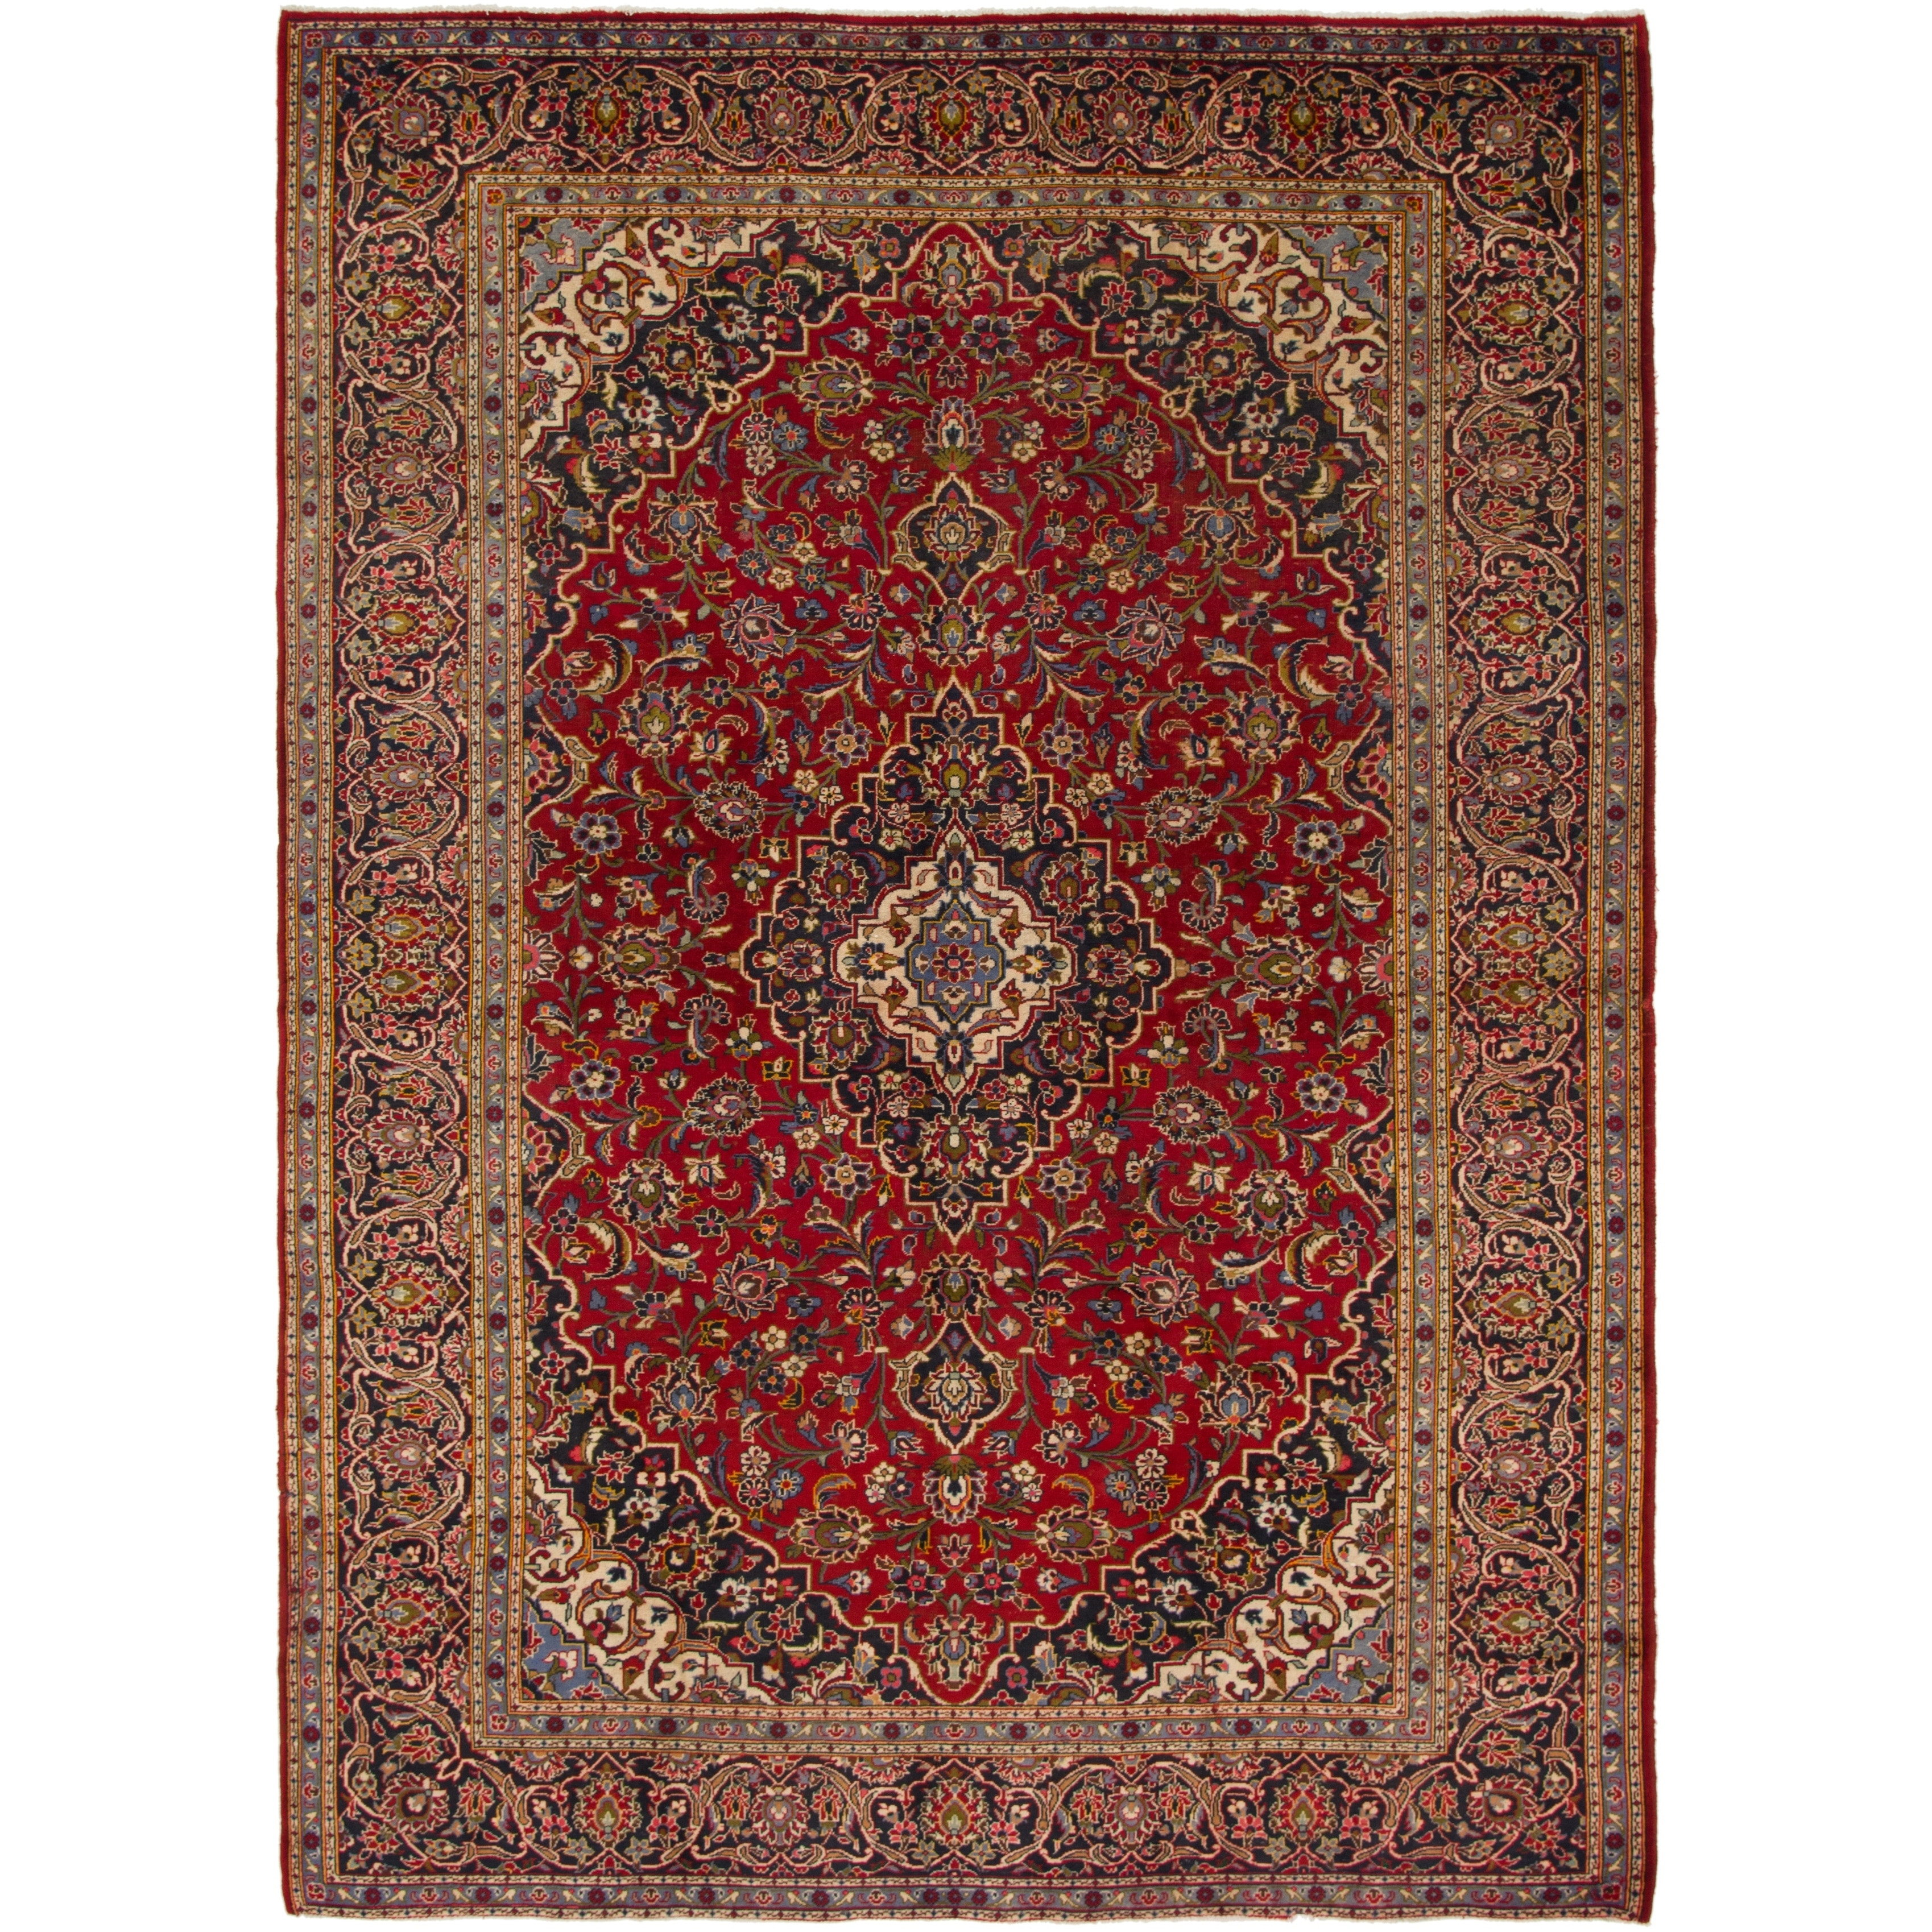 Hand Knotted Kashan Semi Antique Wool Area Rug - 8 9 x 12 2 (Red - 8 9 x 12 2)